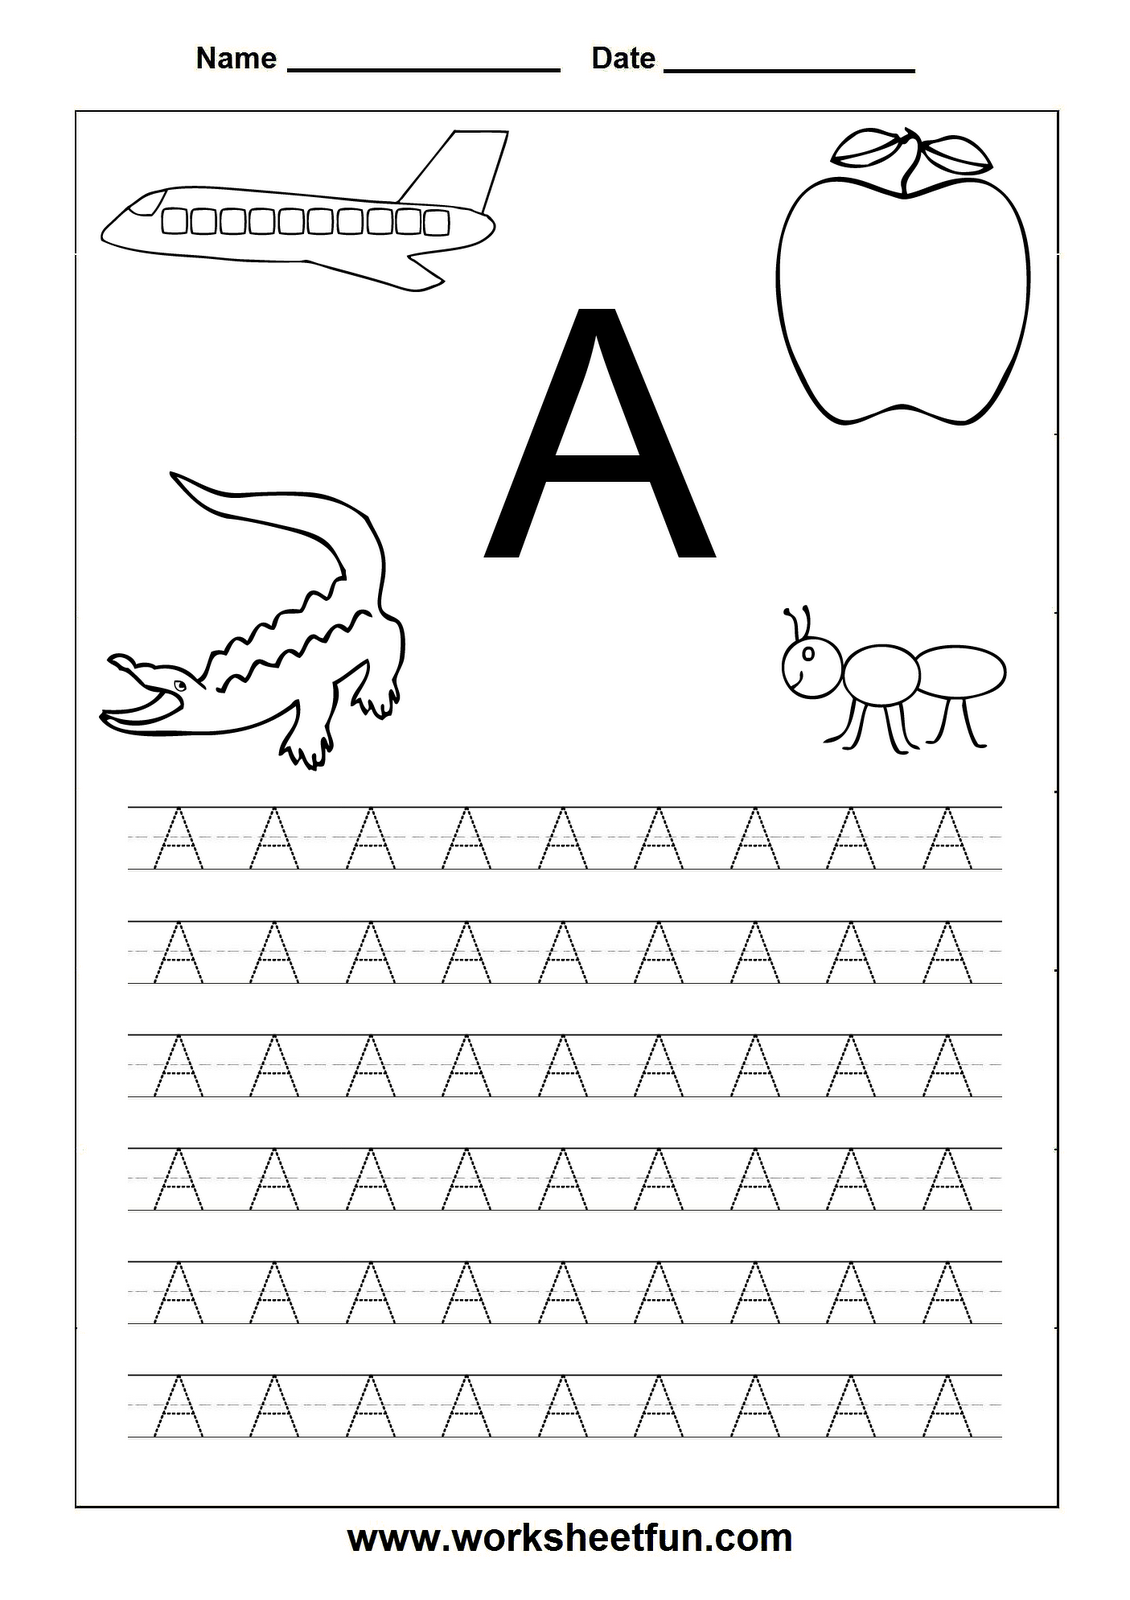 Printables Abc Worksheet For Preschool 1000 images about toddler worksheets on pinterest alphabet preschool and preschool